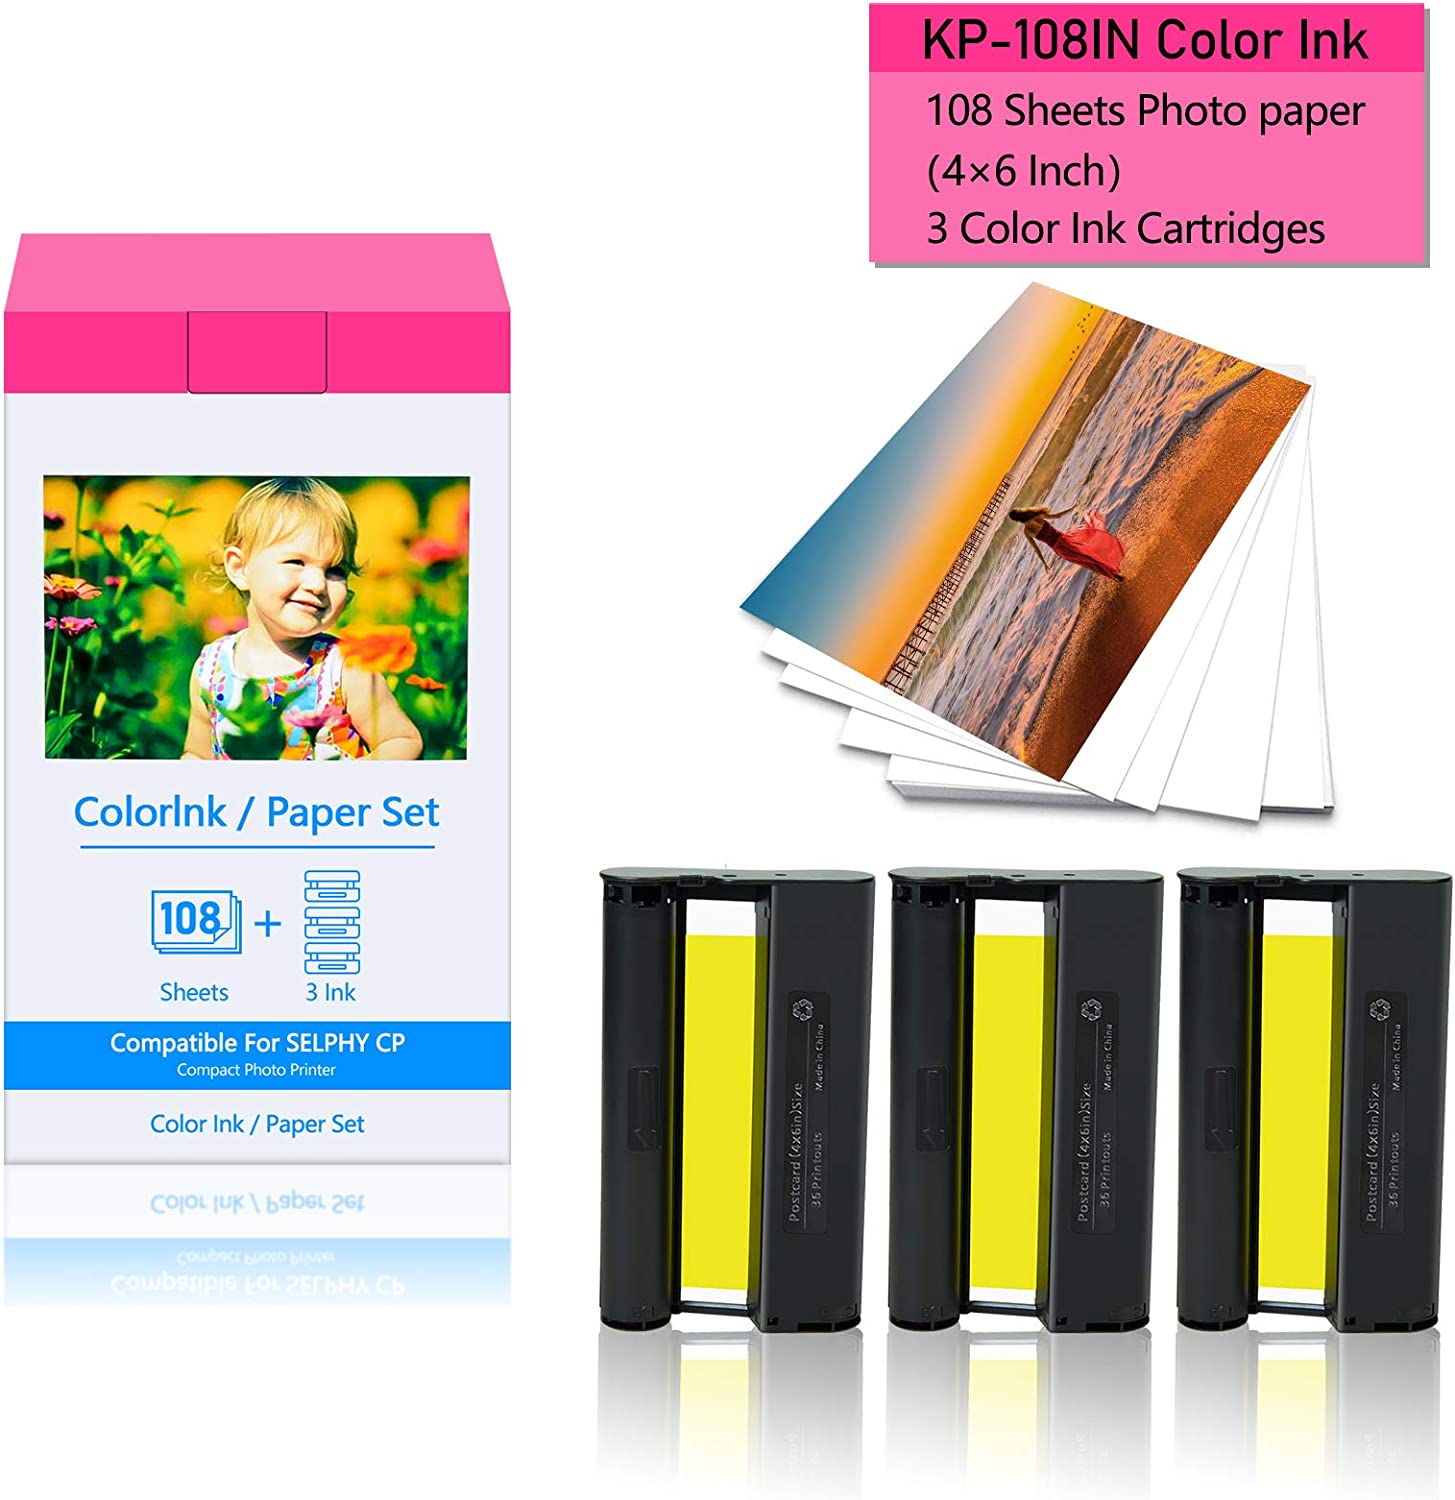 """KCMYTONER 1 Pack Compatible for Canon KP-108IN KP108 3 Color Ink Cartridge and 108 Sheets Paper Set 4""""x6"""" 100 x148mm for Selphy CP1300 CP1200 CP910 CP900 CP760 CP770 CP780 CP800 Wireless Compact Photo"""